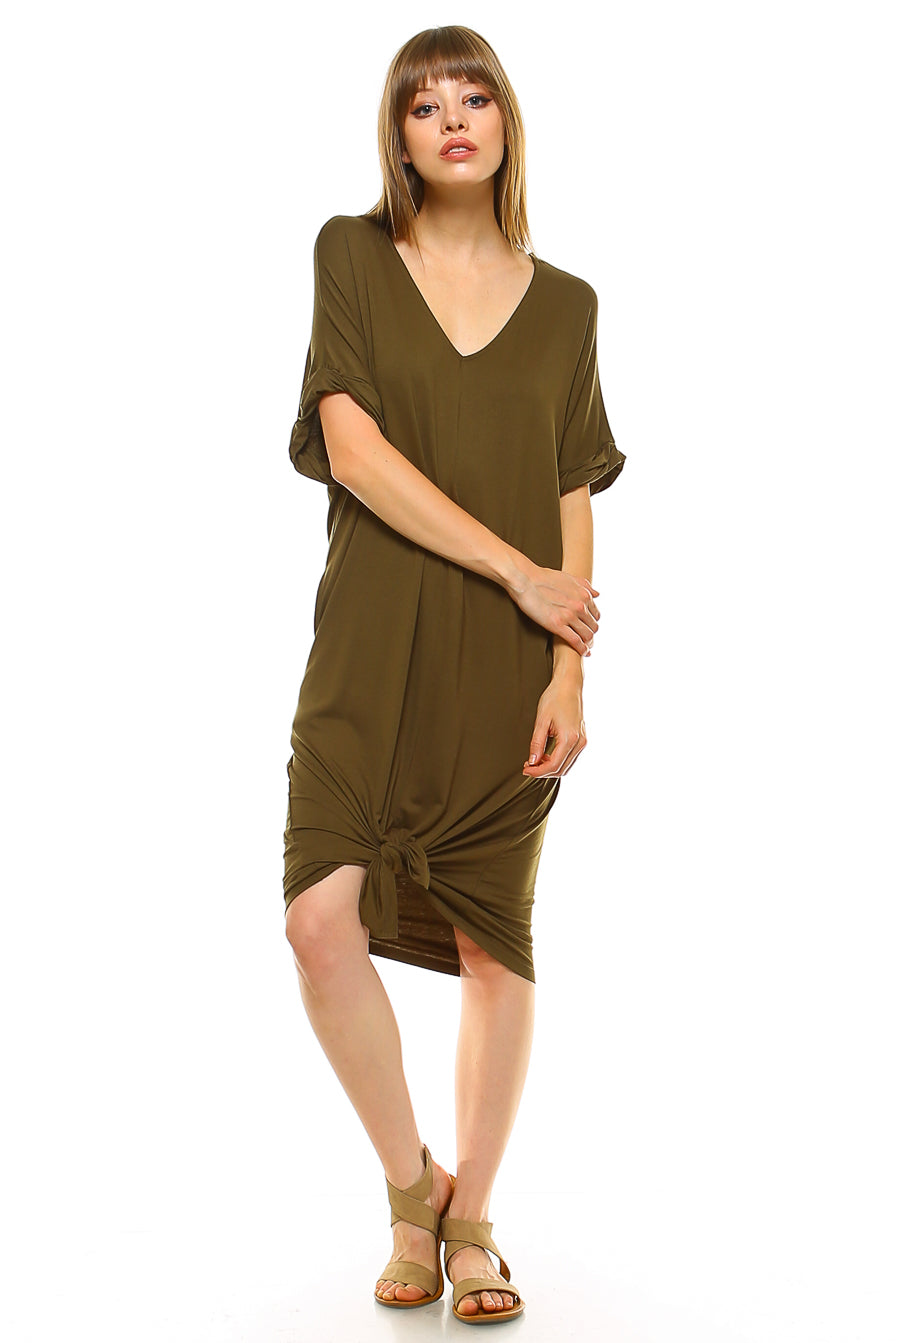 Teeze Me | Rolled-Up Short Sleeve V Neck Dress With Front Slit | Olive